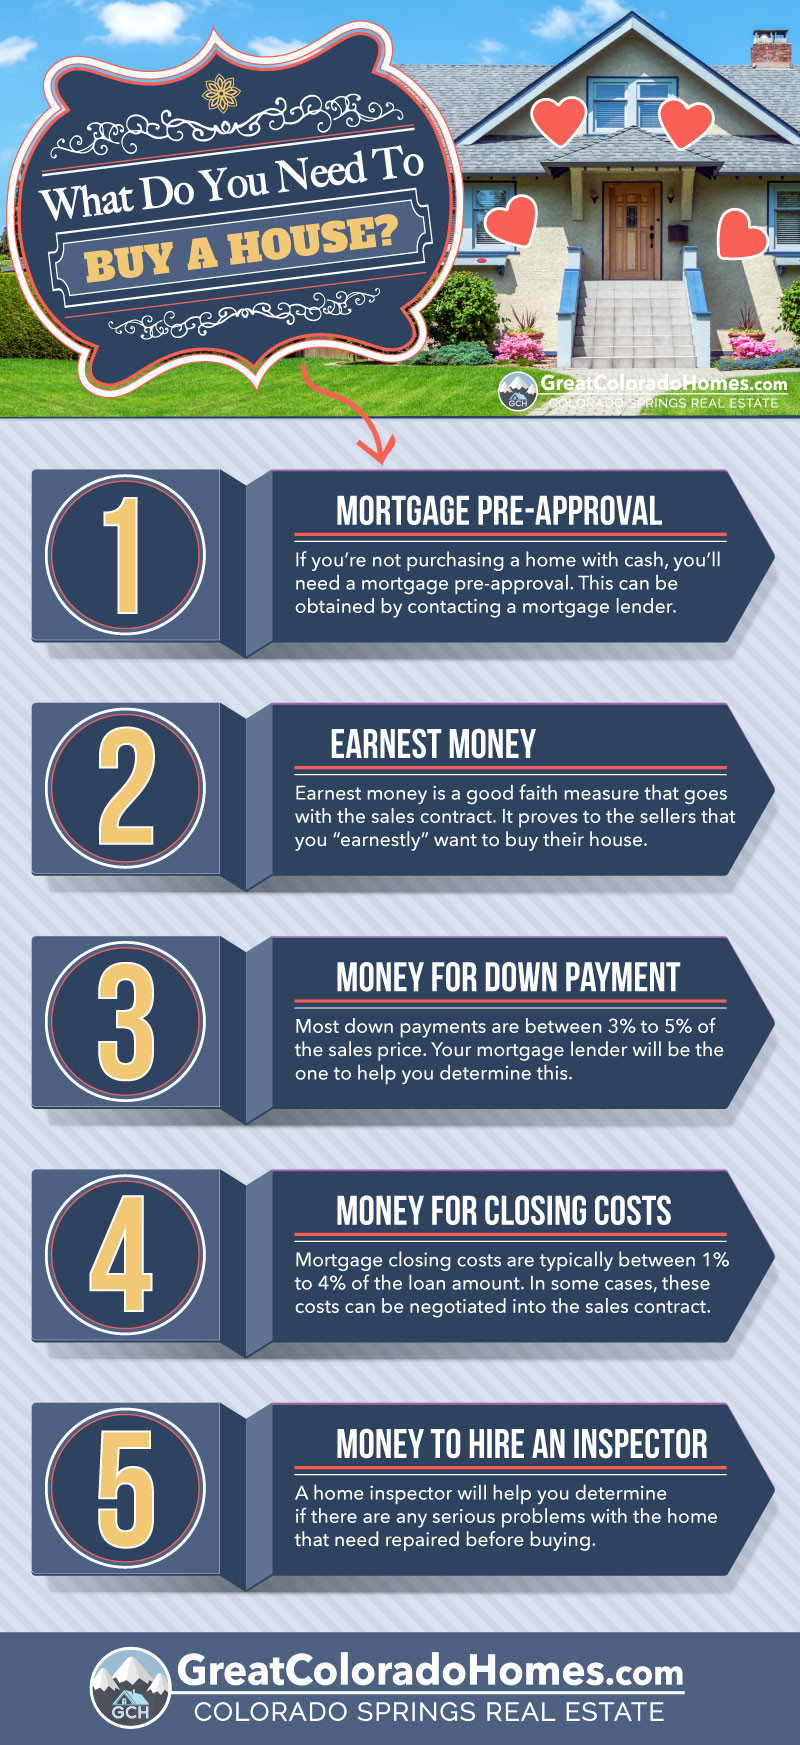 What Do You Need To Know About Buying A House